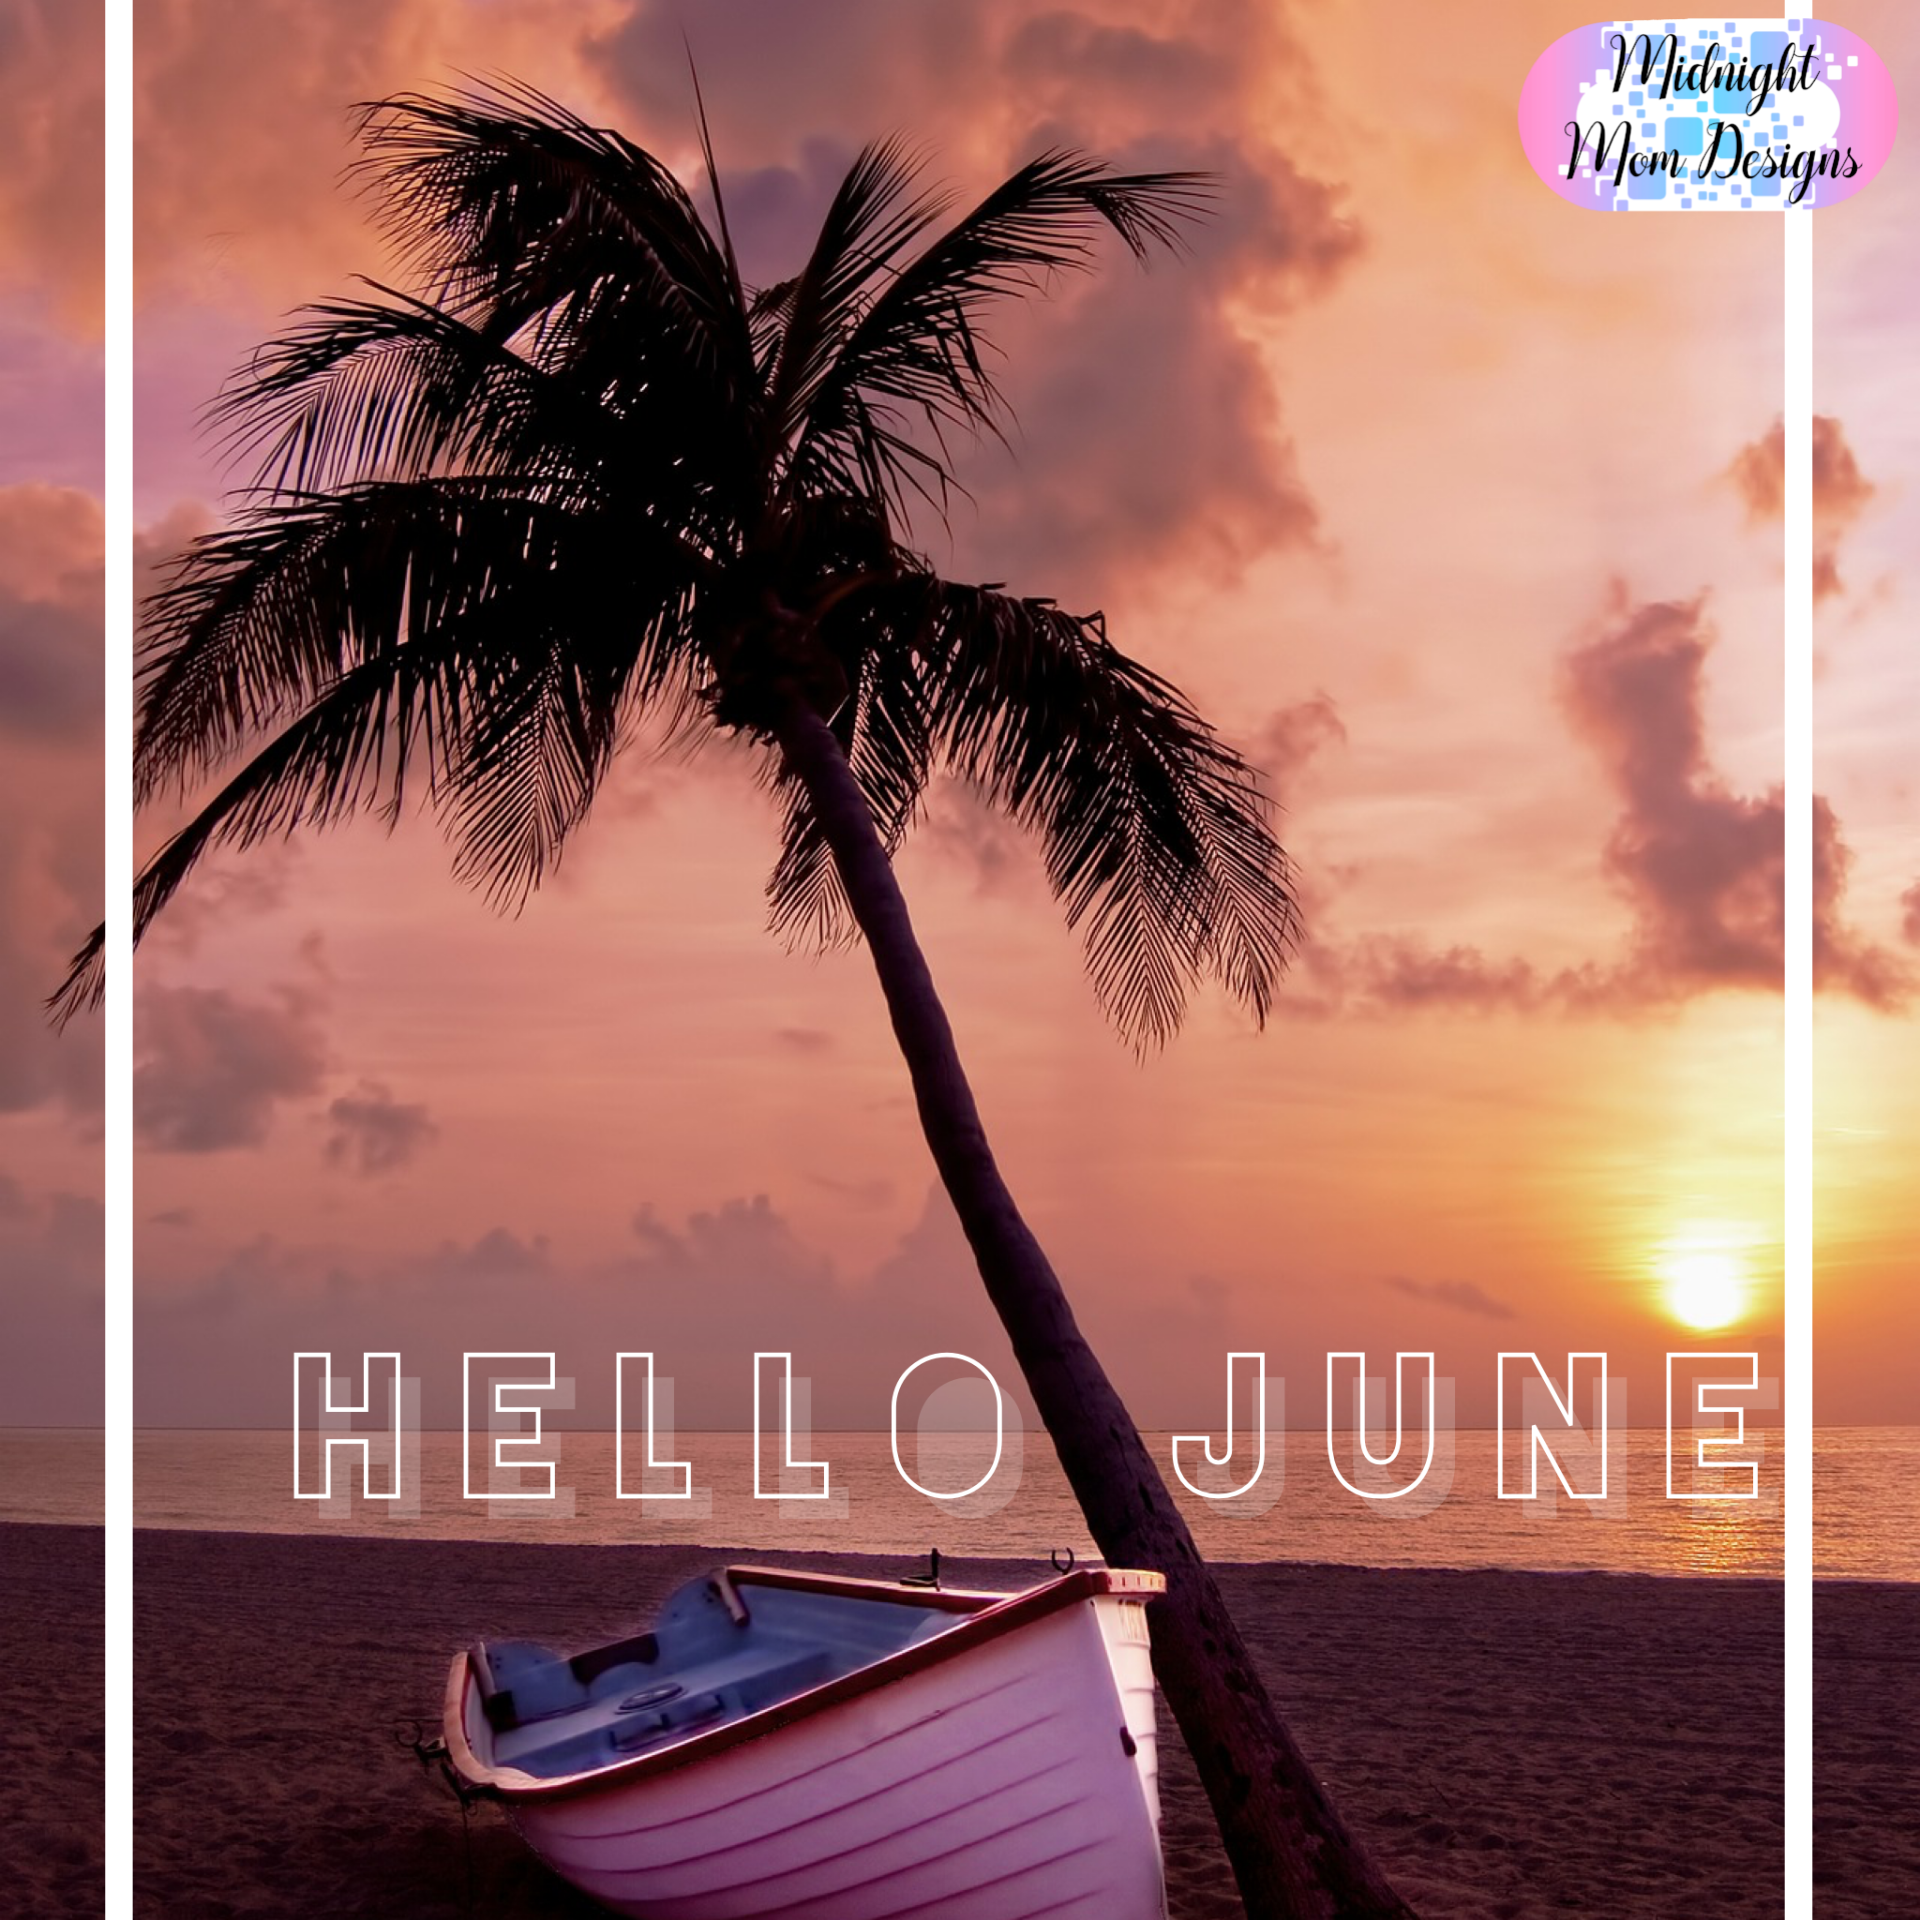 Hello June! What is your favorite thing about this month?  www.midnightmomdesigns.com  #june #summer #newmonth #newgoals #planitout #enjoysummer #pooltime #favoritething #business #focus #getstarted #goals #midnightmomdesigns#custom #SEO #SSL #standout #success #web #webdesign #webdesigner #website #websitedesign #websites #yougotthis